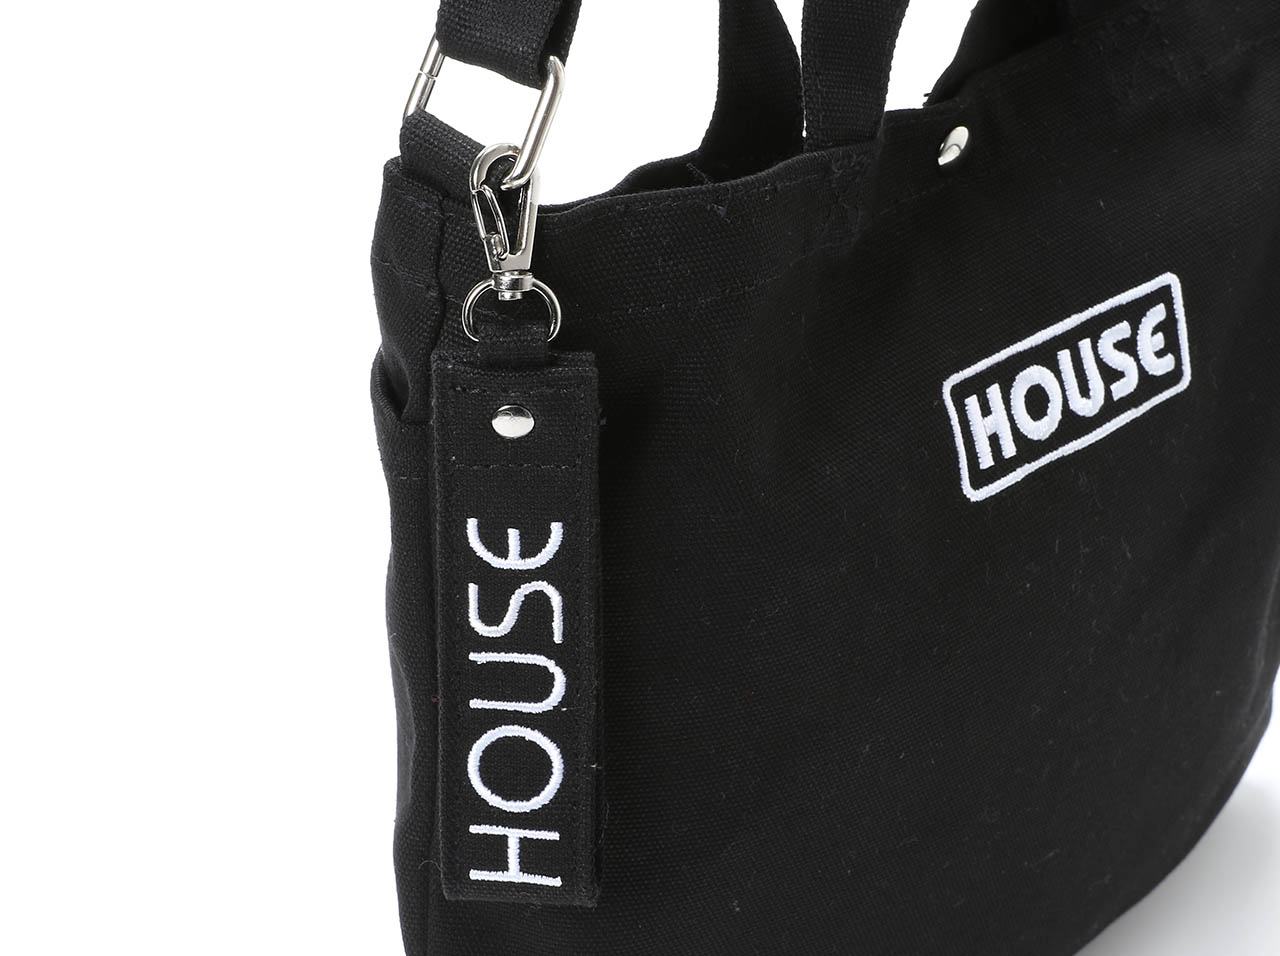 【60%OFF】IN THE HOUSE CANVAS SHOULDER BAG LARGE 2 - ith-0063